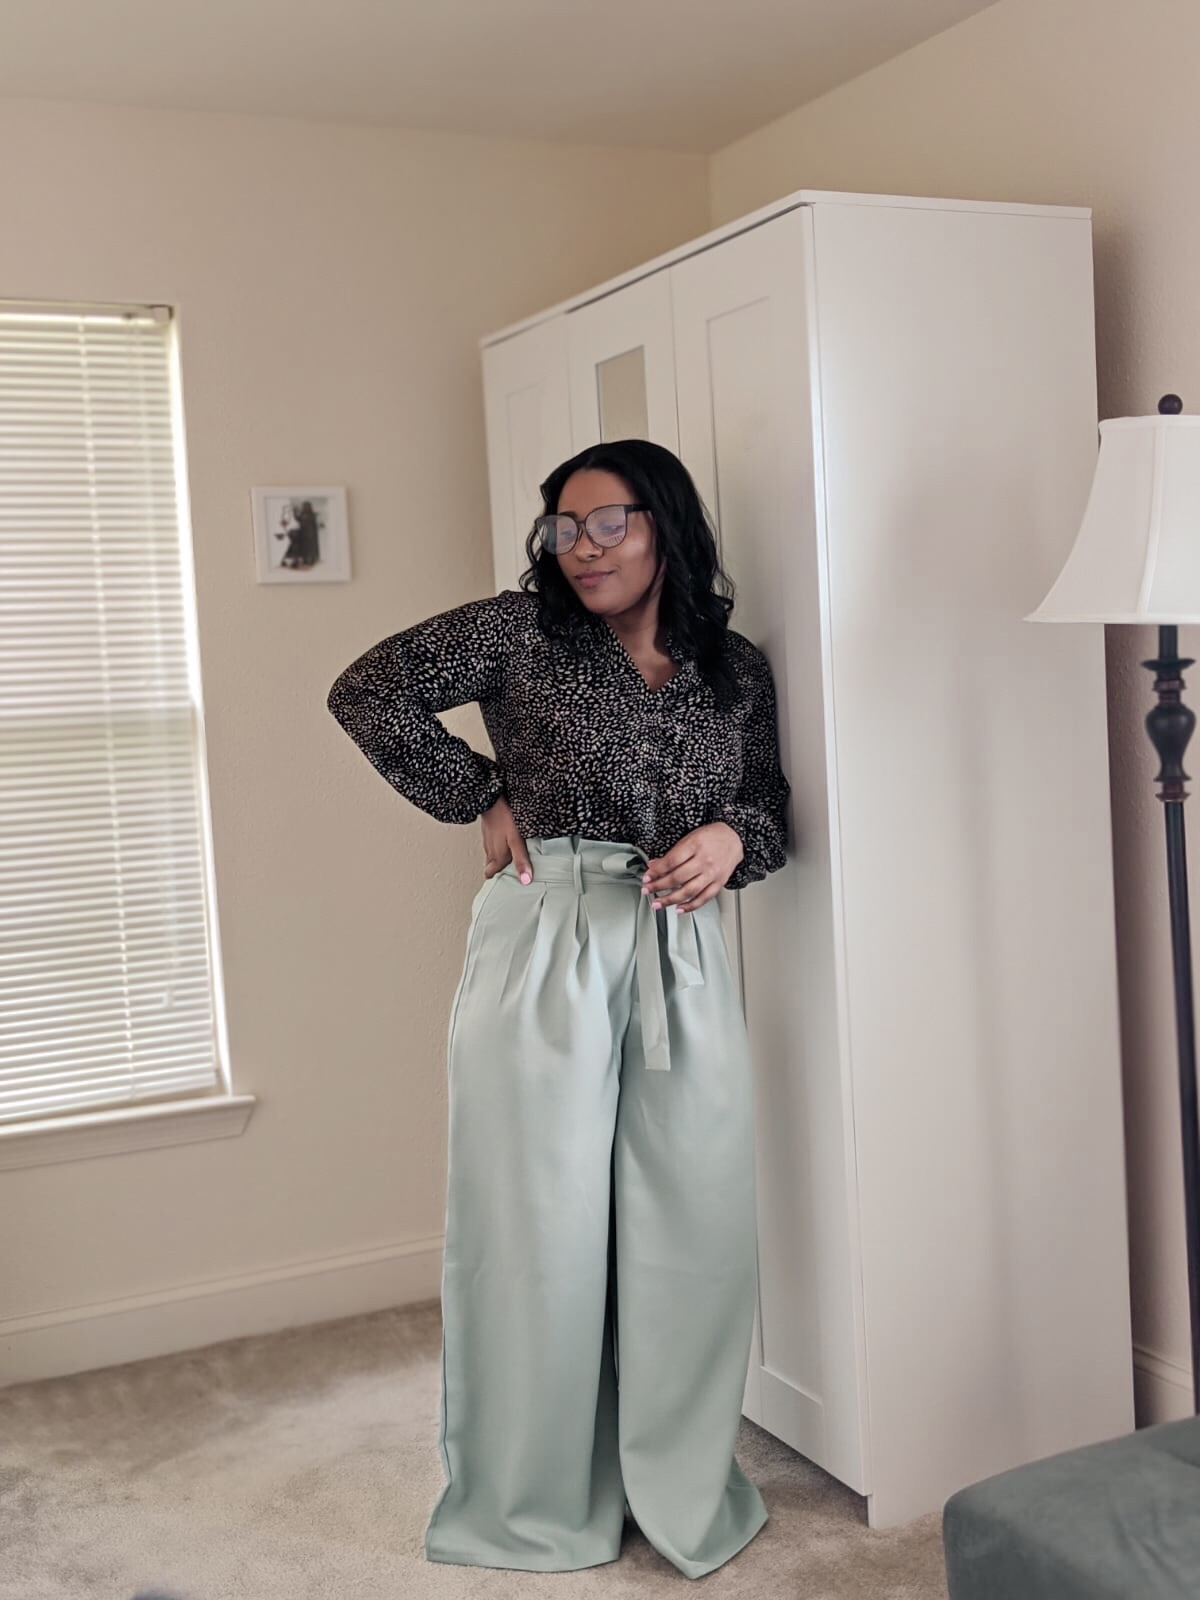 shein, shein at home, work from home outfits, wfh, shein reviews, pattys kloset, easy work from home outfits